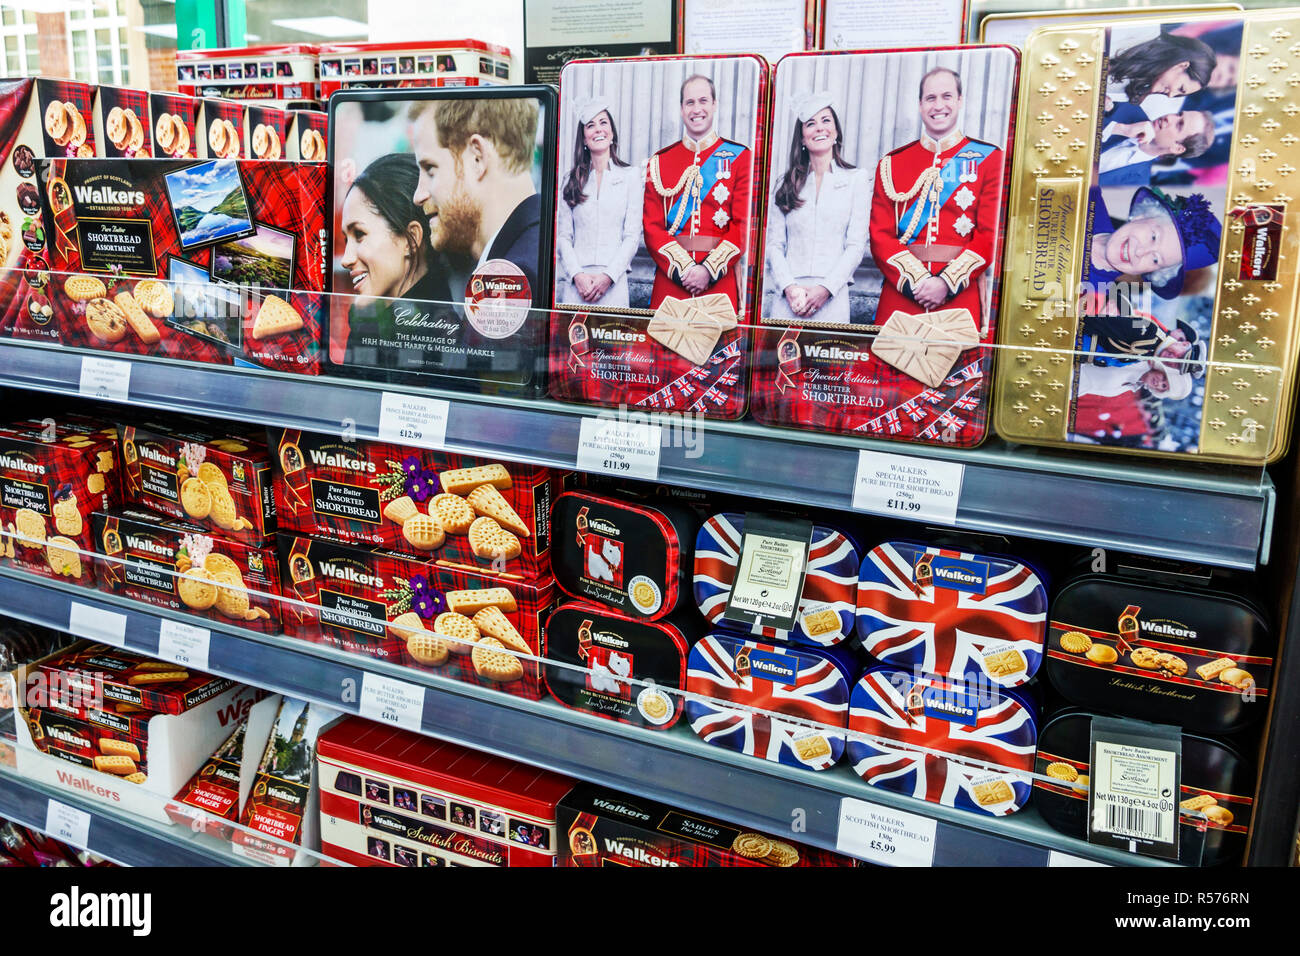 United Kingdom Great Britain England London Westminster Portlands Express convenience store groceries market royals commemorative biscuit tins Walkers - Stock Image